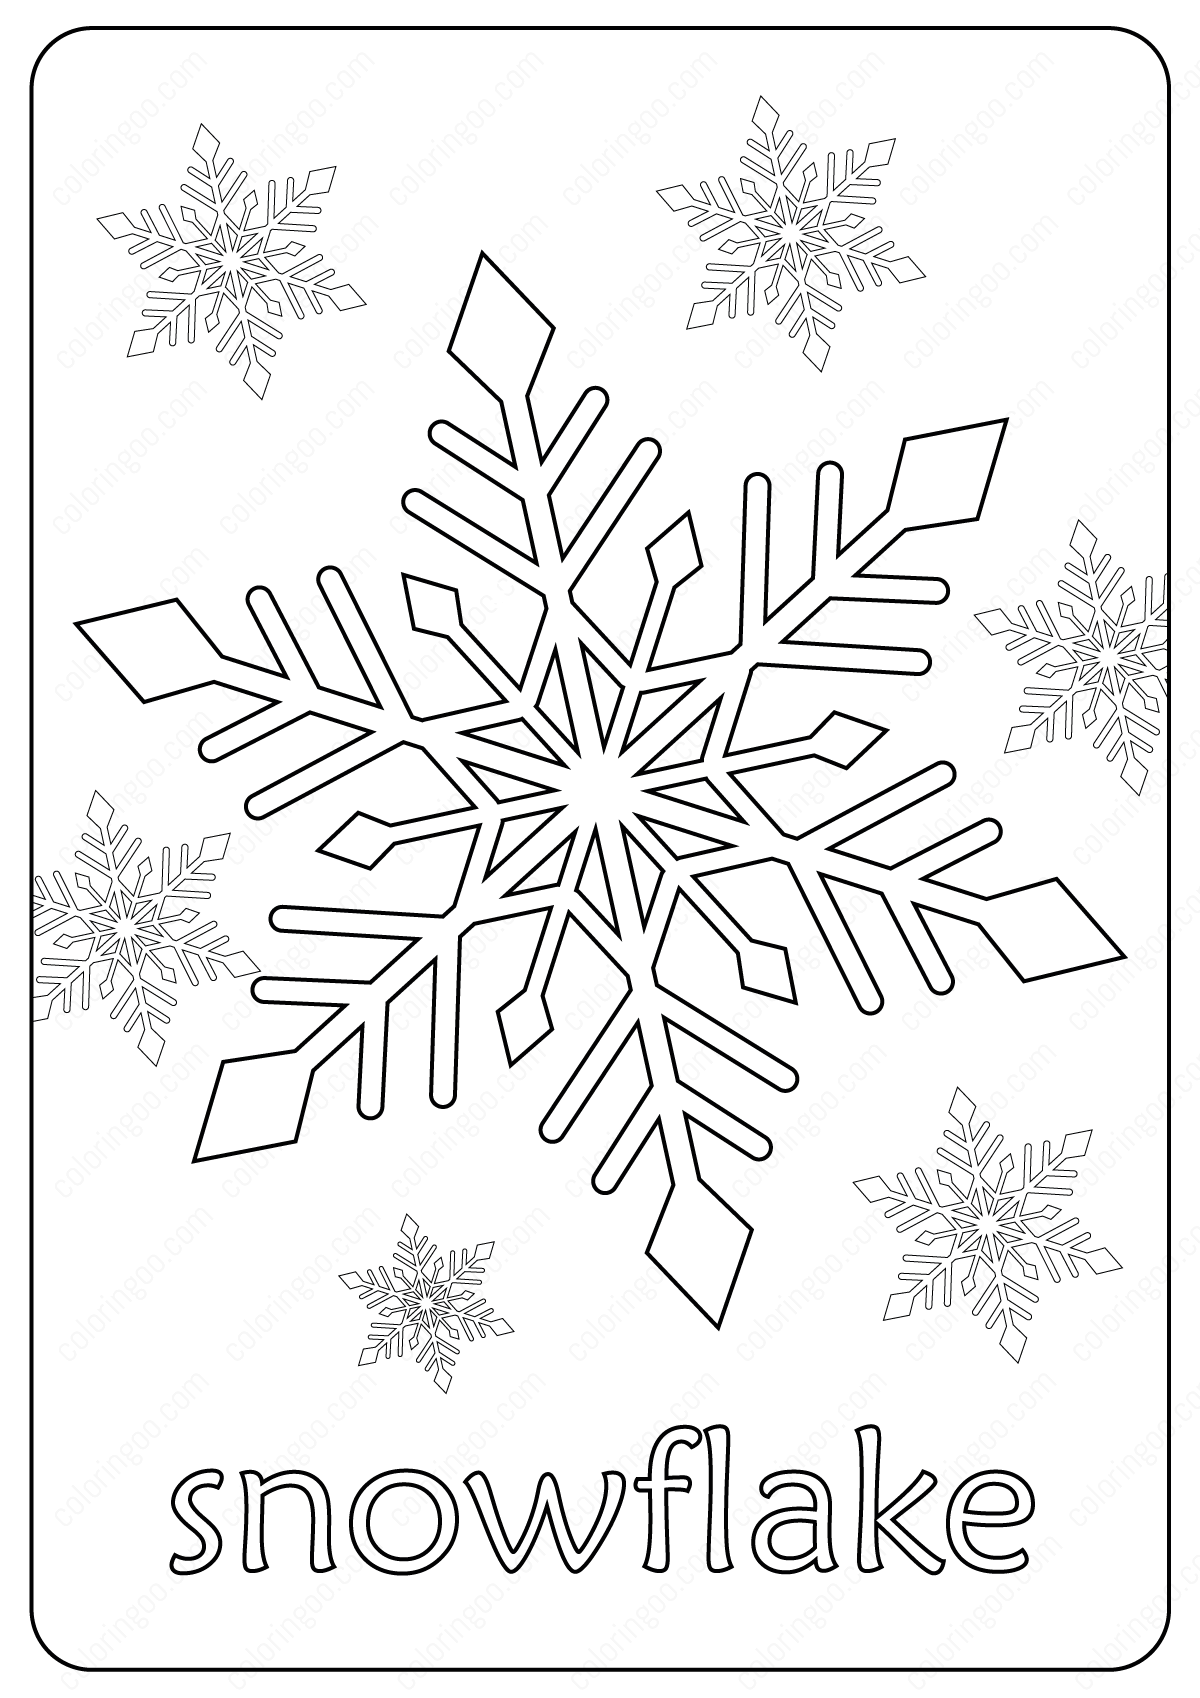 free snowflake coloring pages free printable snowflake coloring pages pages free snowflake coloring